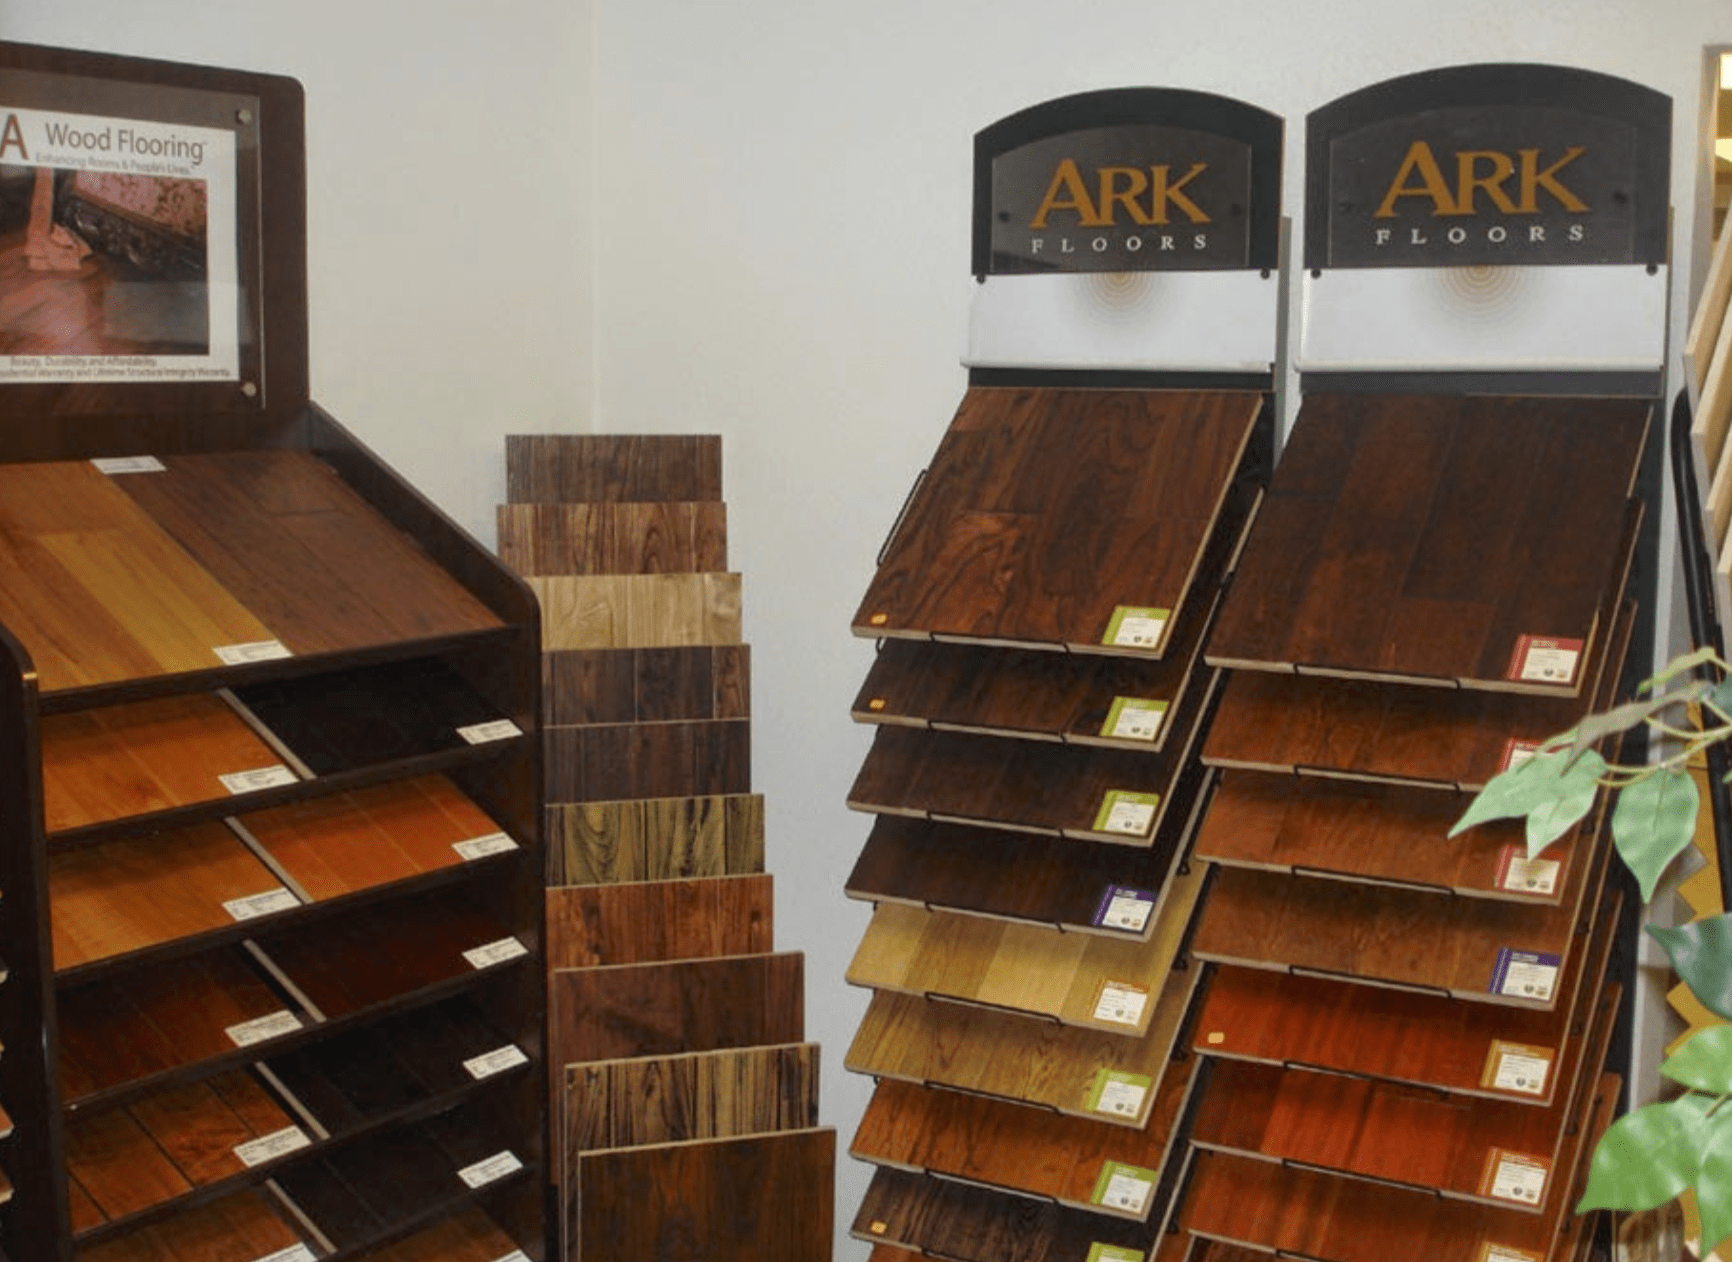 Ark Floors for your Irvine, CA home from 55 Flooring